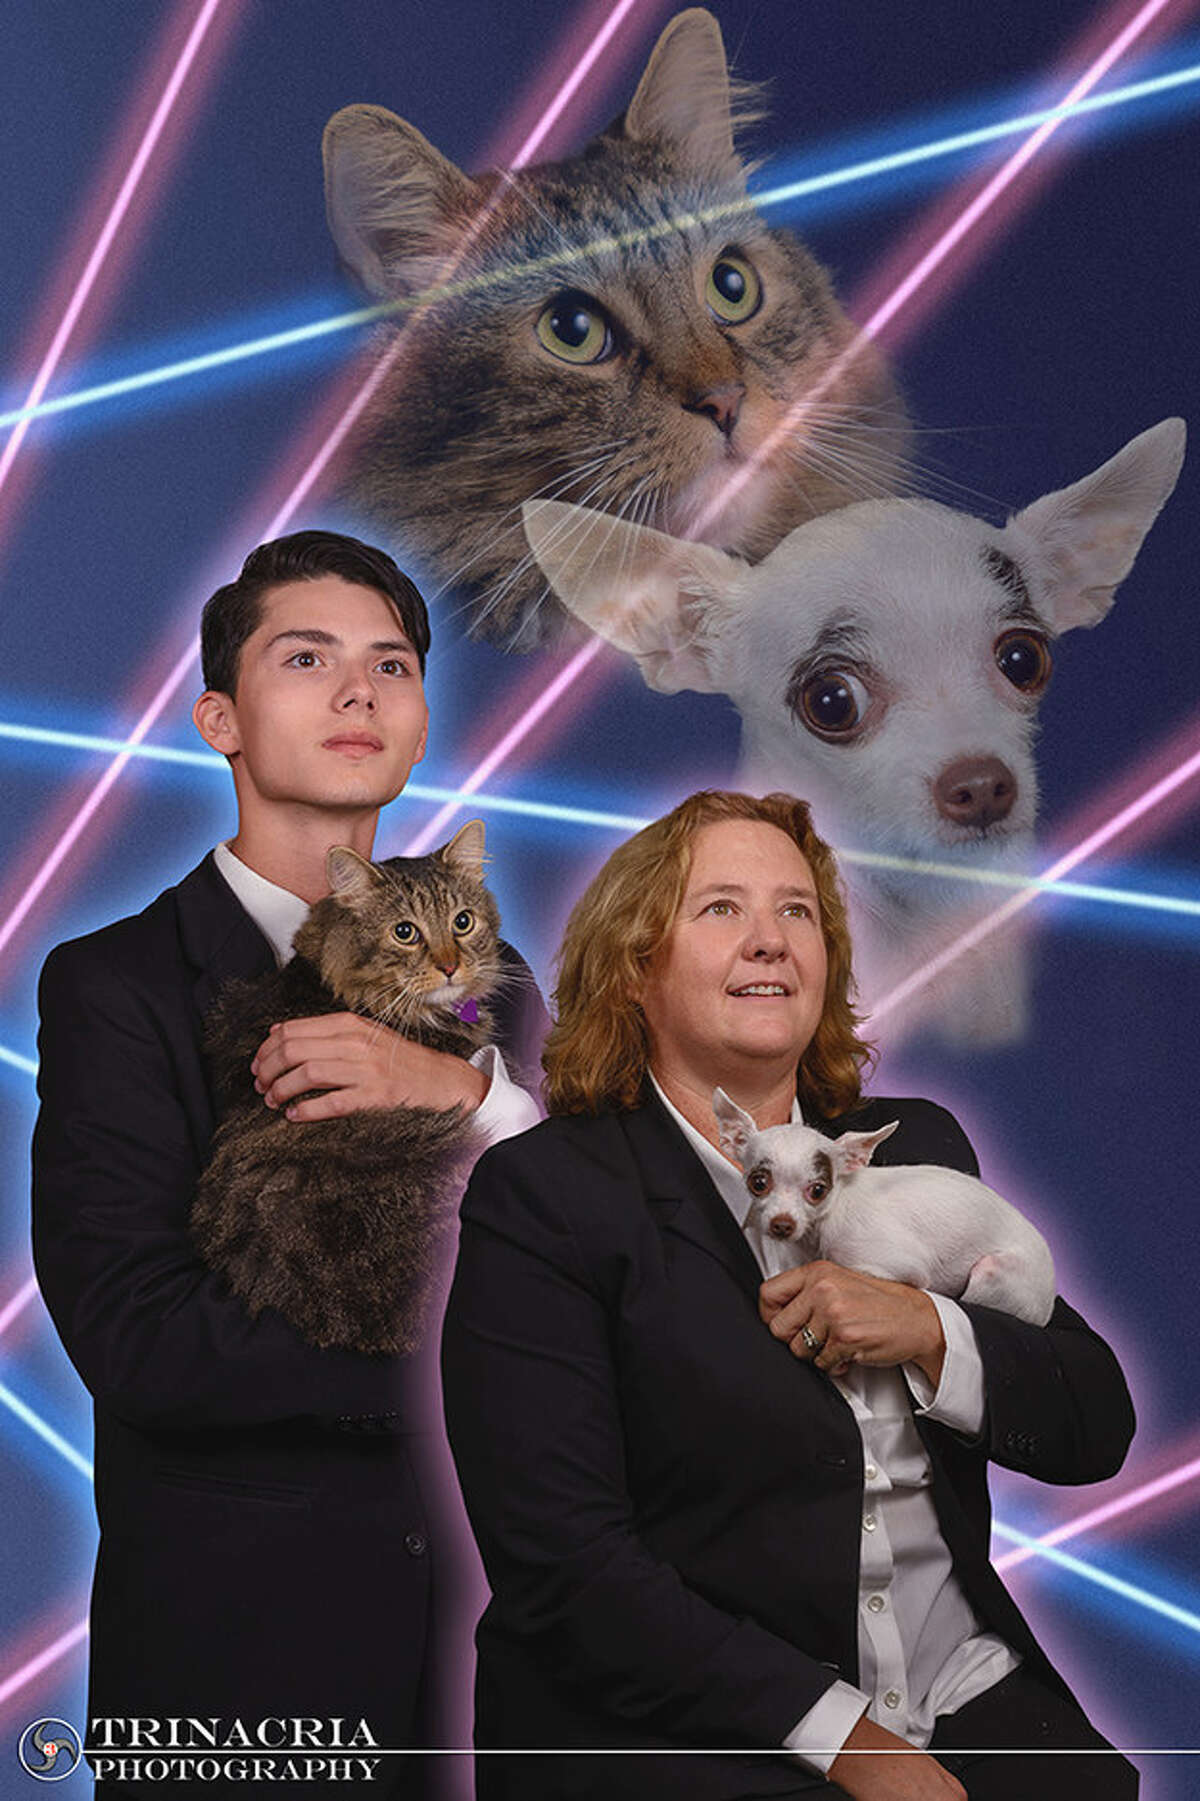 Draven Rodriguez and Mr. Bigglesworth were later joined by Schenectady High School Principal Diane Wilkinson and her dog, Vivienne. The photo was taken by Vincent Giordano. (Provided)